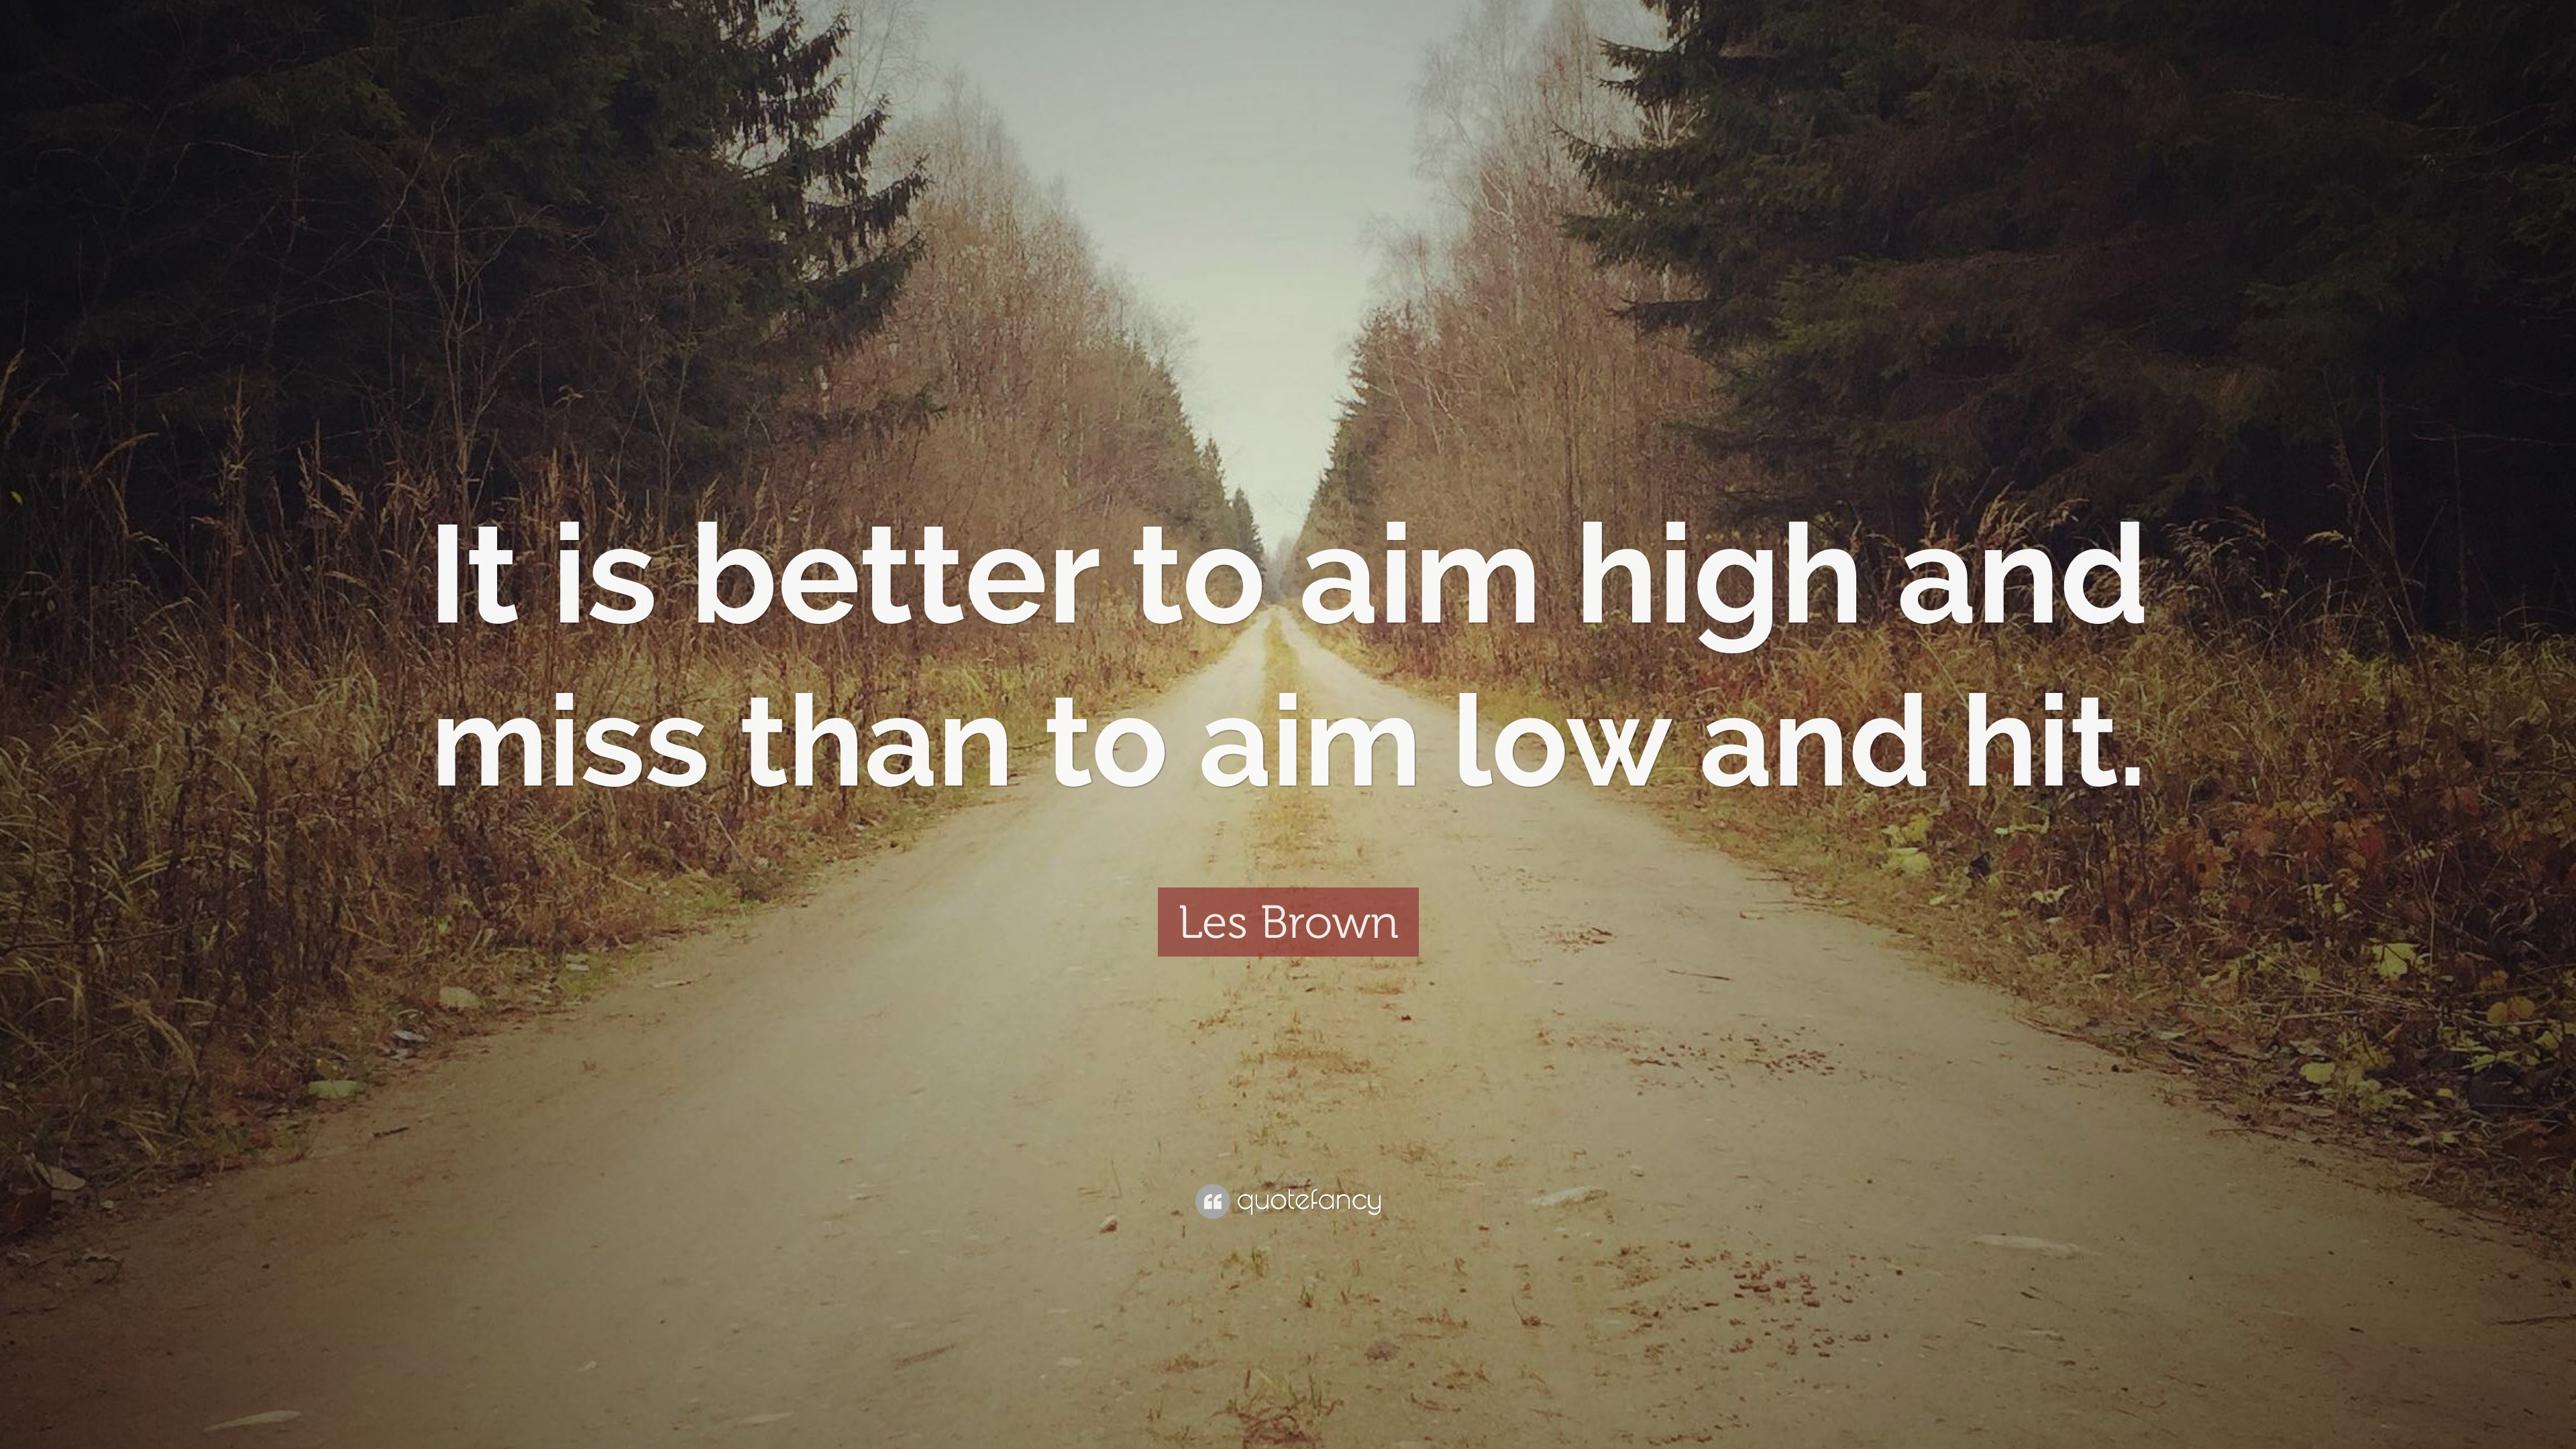 Les Brown Quotes (100 Wallpapers)